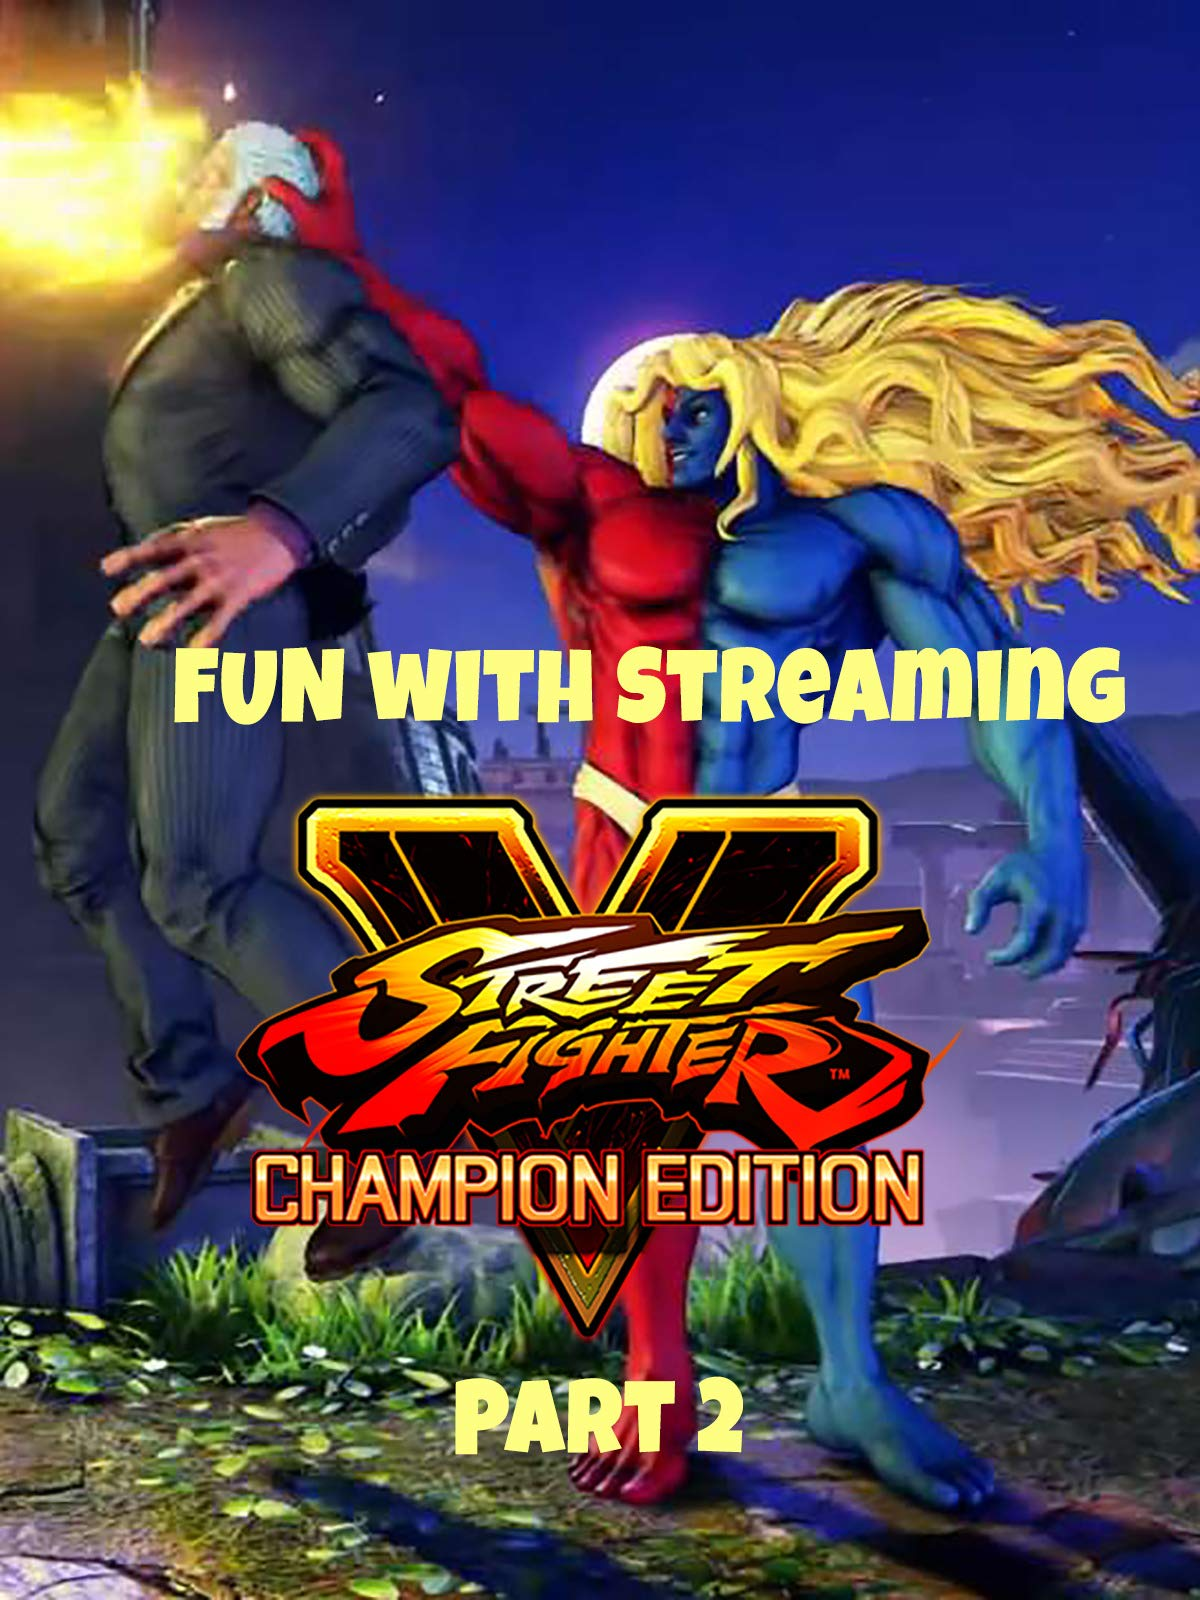 Clip: Fun With Streaming Street Fighter V Champion Edition Part 2 on Amazon Prime Video UK